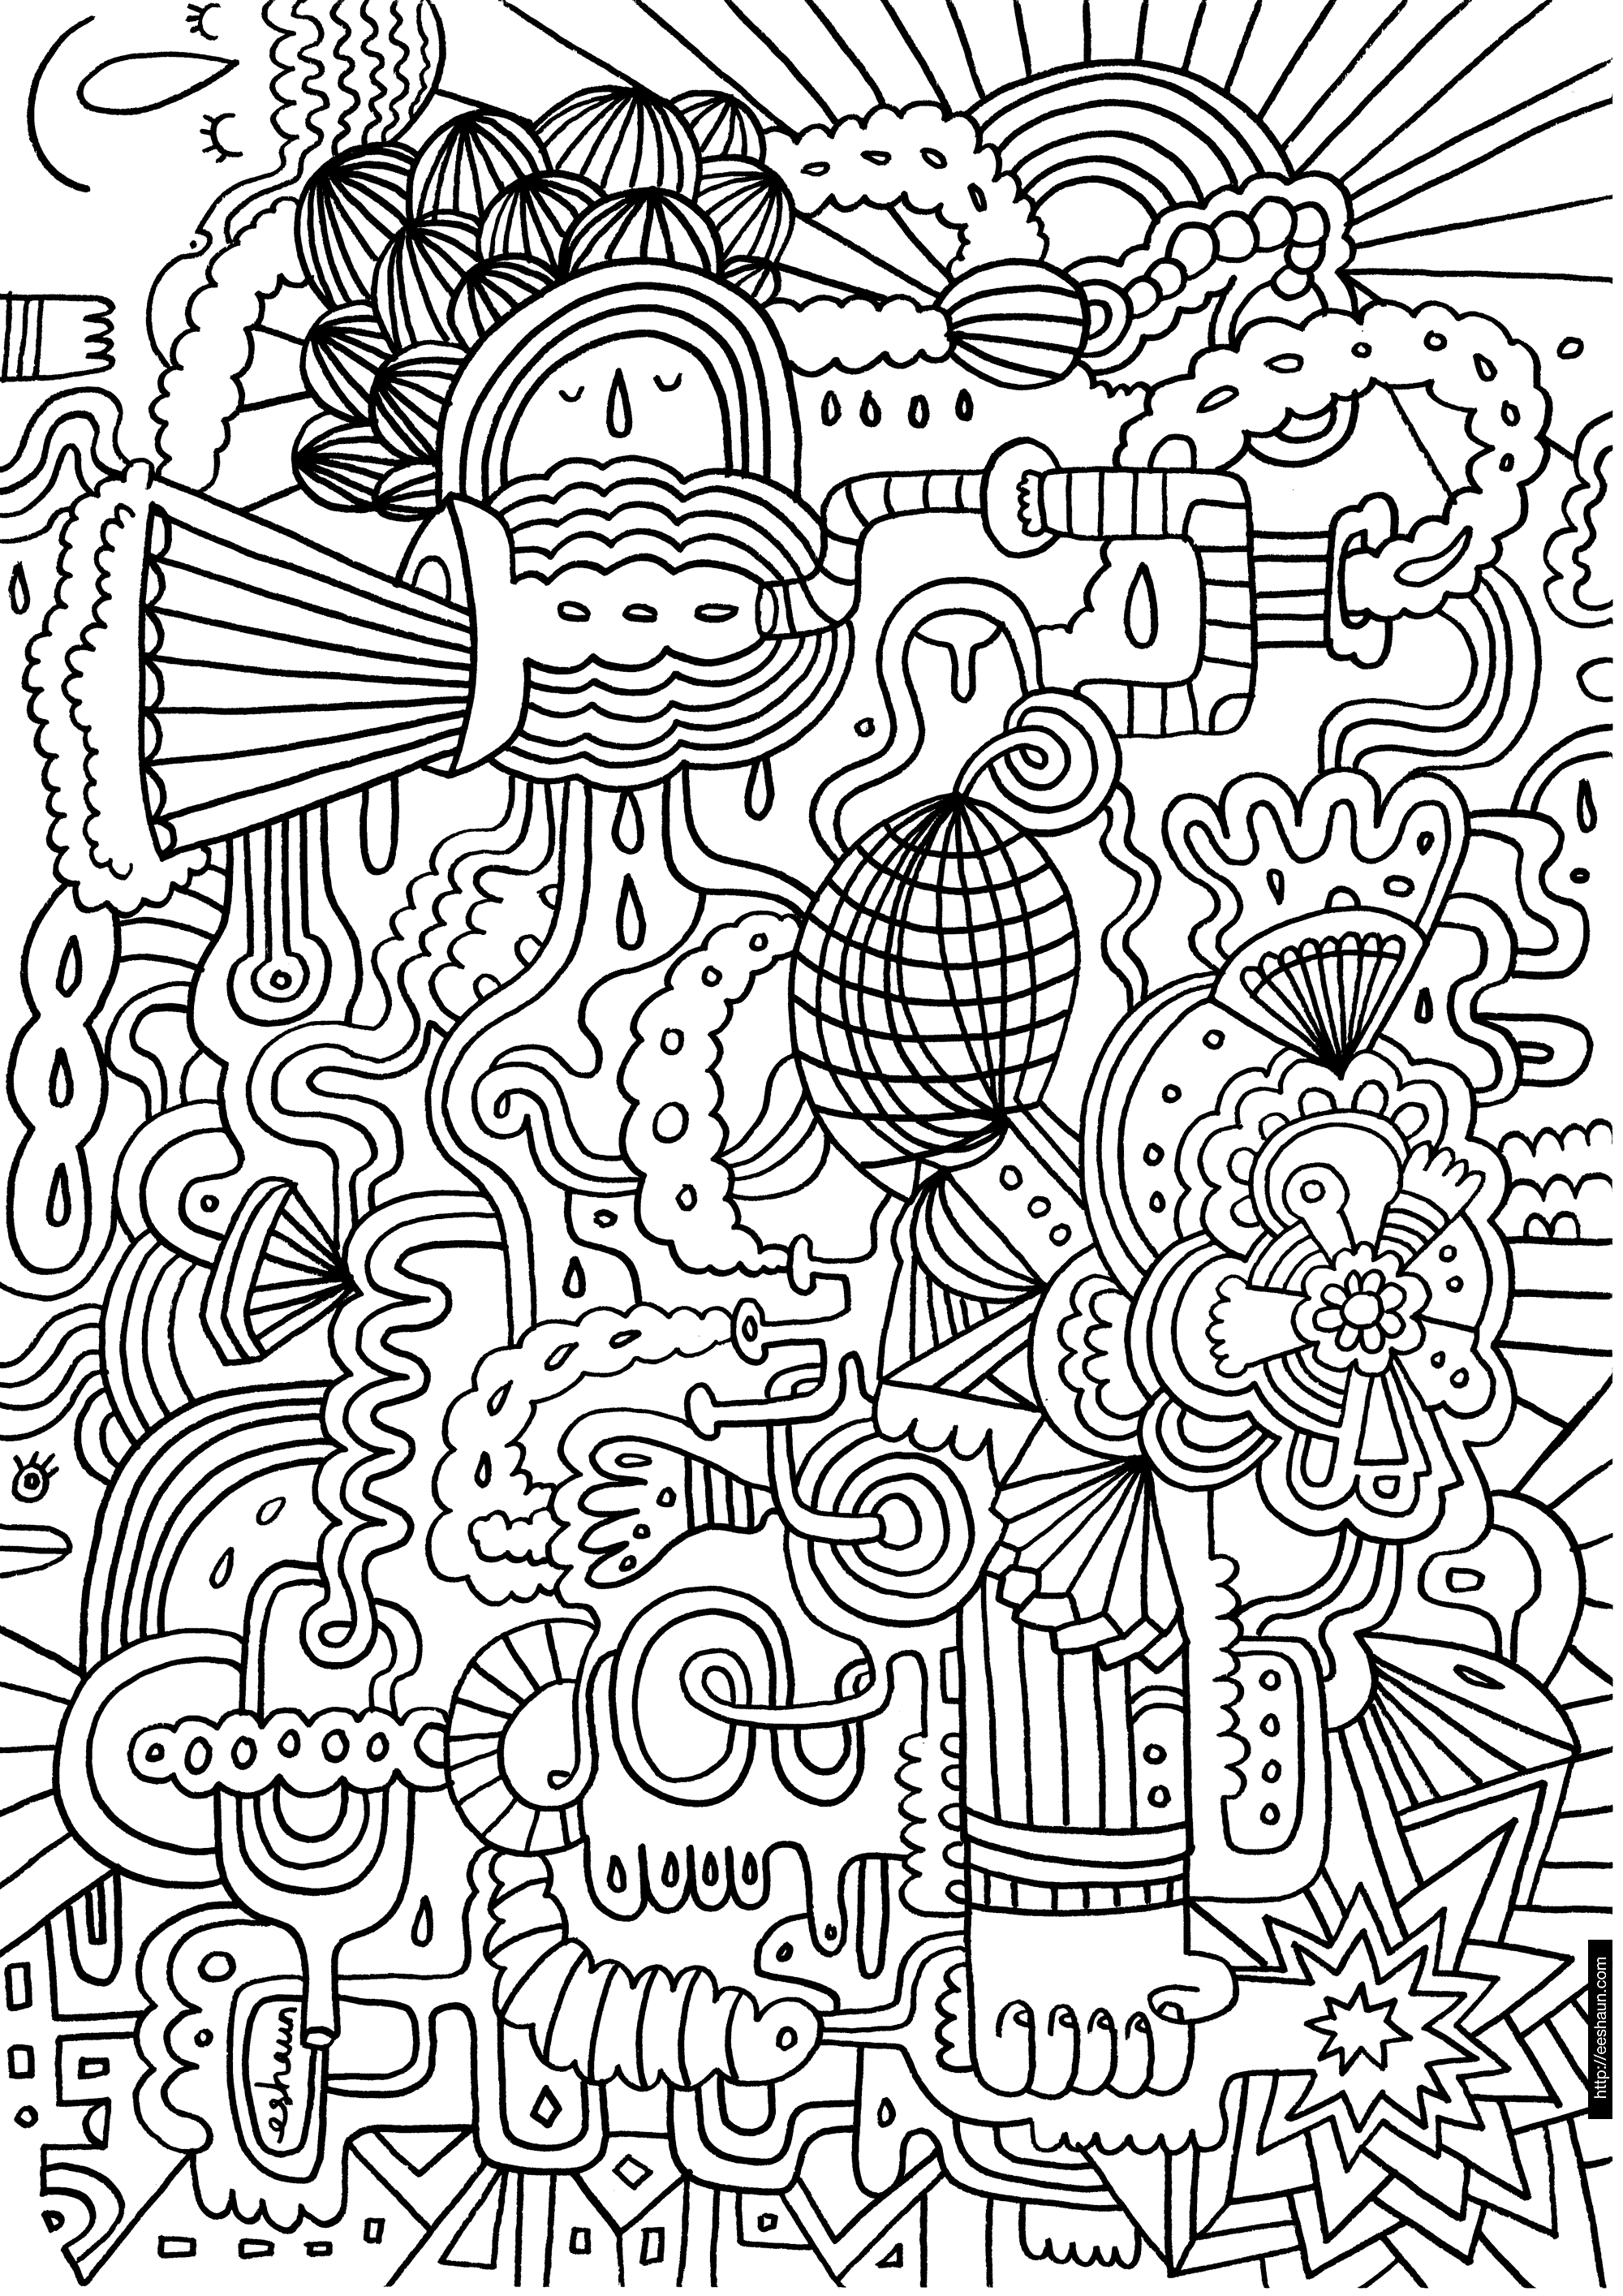 patterns colouring islamic pattern coloring page free printable coloring pages colouring patterns